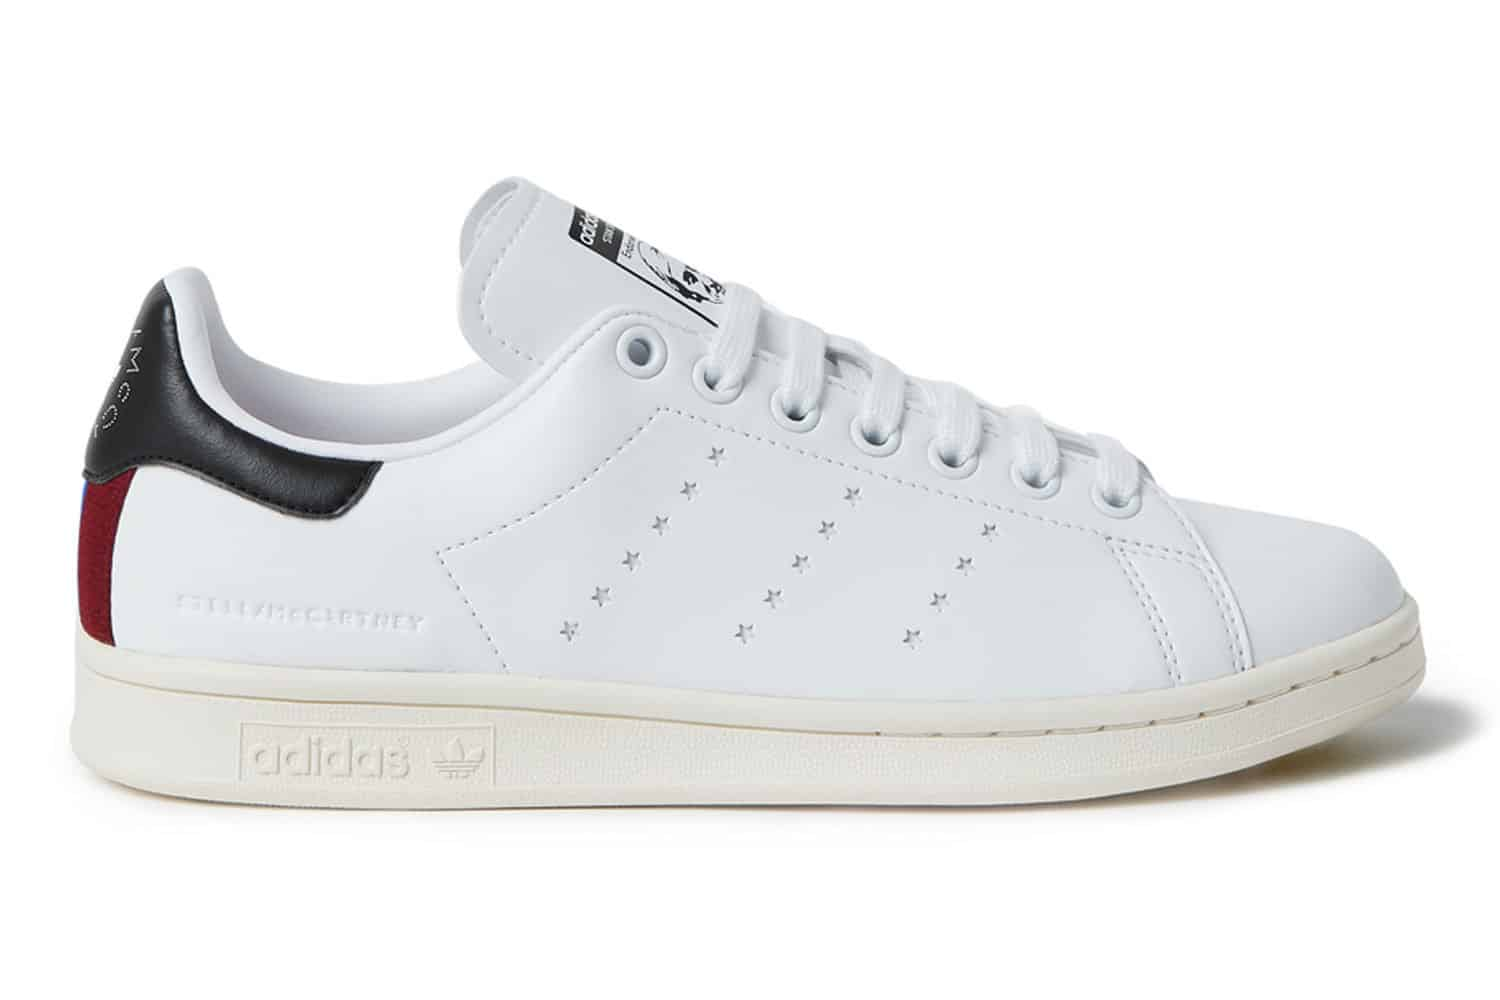 6137cec1a0dbed Editor s Pick  Stella McCartney s Vegetarian Leather Stan Smiths